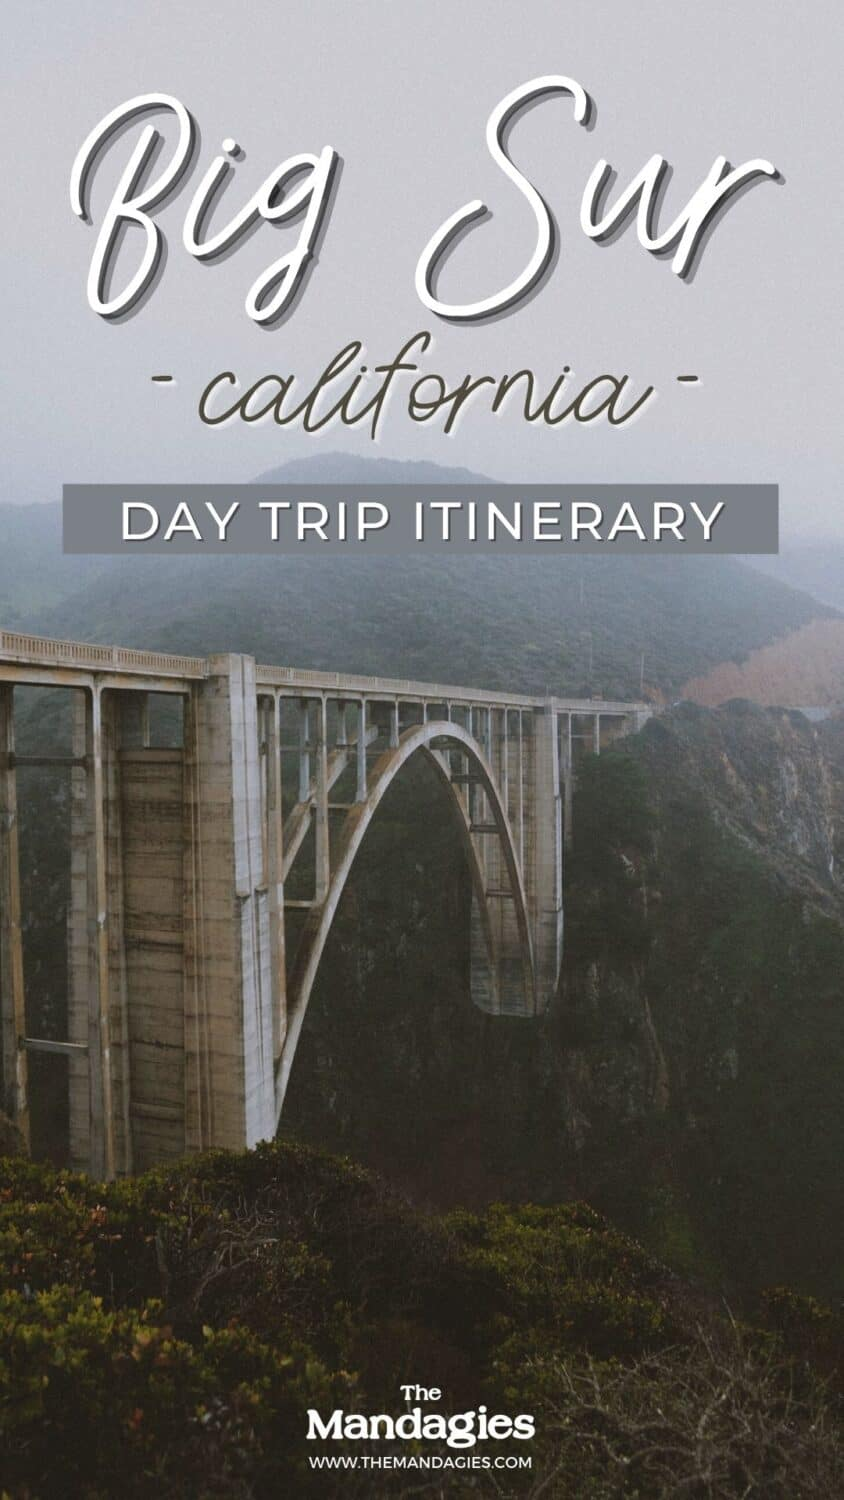 Ready to plan the best day trip to Big Sur State Park? This stunning park on the California Coast is an easy day trip from San Francisco - perfect for adventure lovers! Save this post for inspiraiton to McWay Falls   Pfeiffer Beach   Carmel By The Sea  Bixby Creek Bridge #california #pacificcoasthighway #Bigsur #Roadtrip #pacificocean #hiking #camping #sunrise #travelcalifornia #travel #USAtravel #usa #photography #sunset #PNW #pacificnorthwest